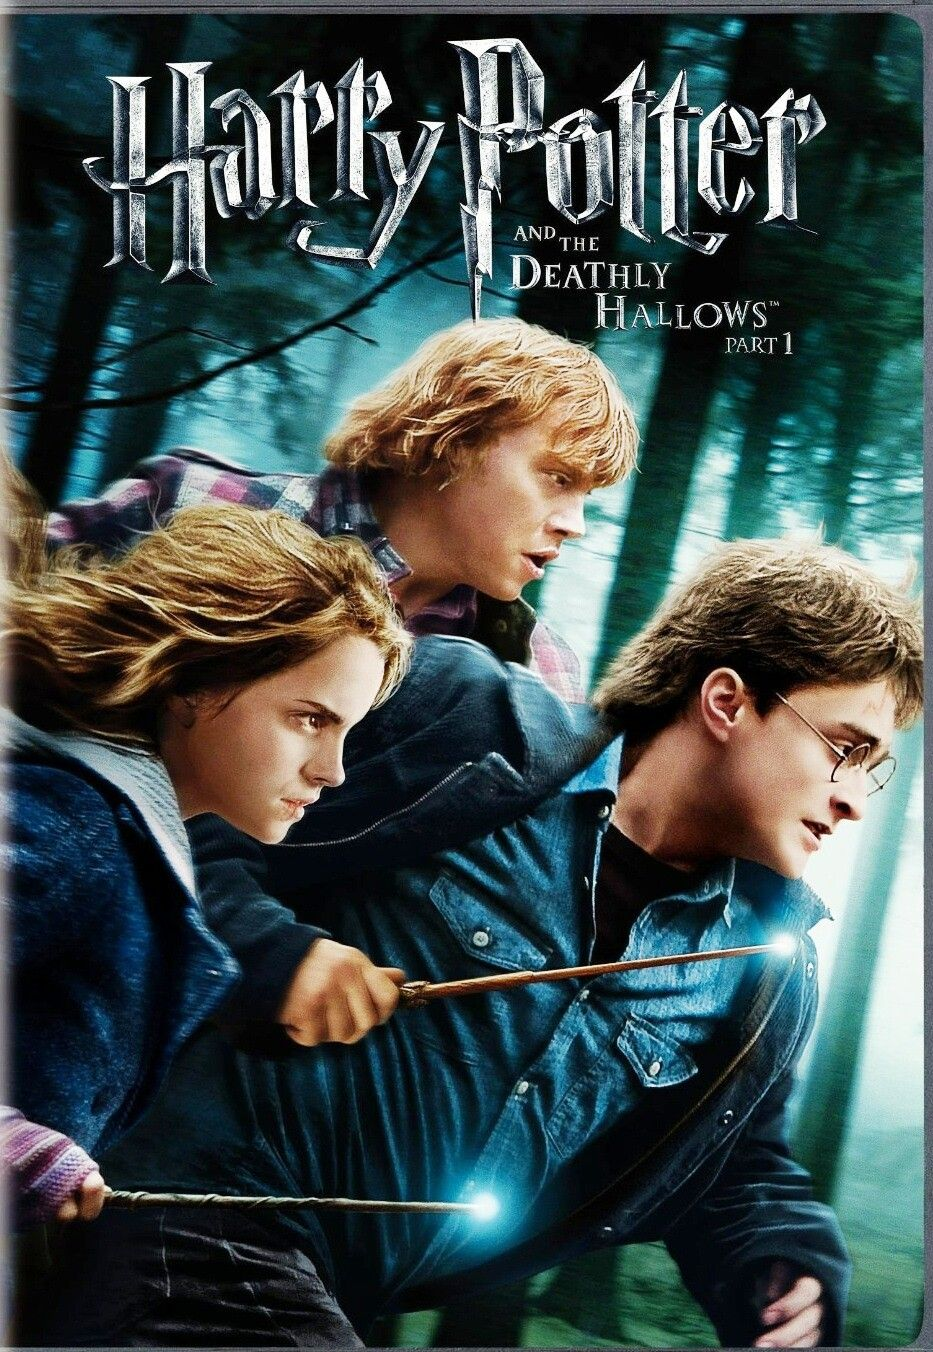 Harry Potter 2010 The Deathly Hallows Pt 1 Deathly Hallows Part 1 Deathly Hallows Harry Potter Part 1